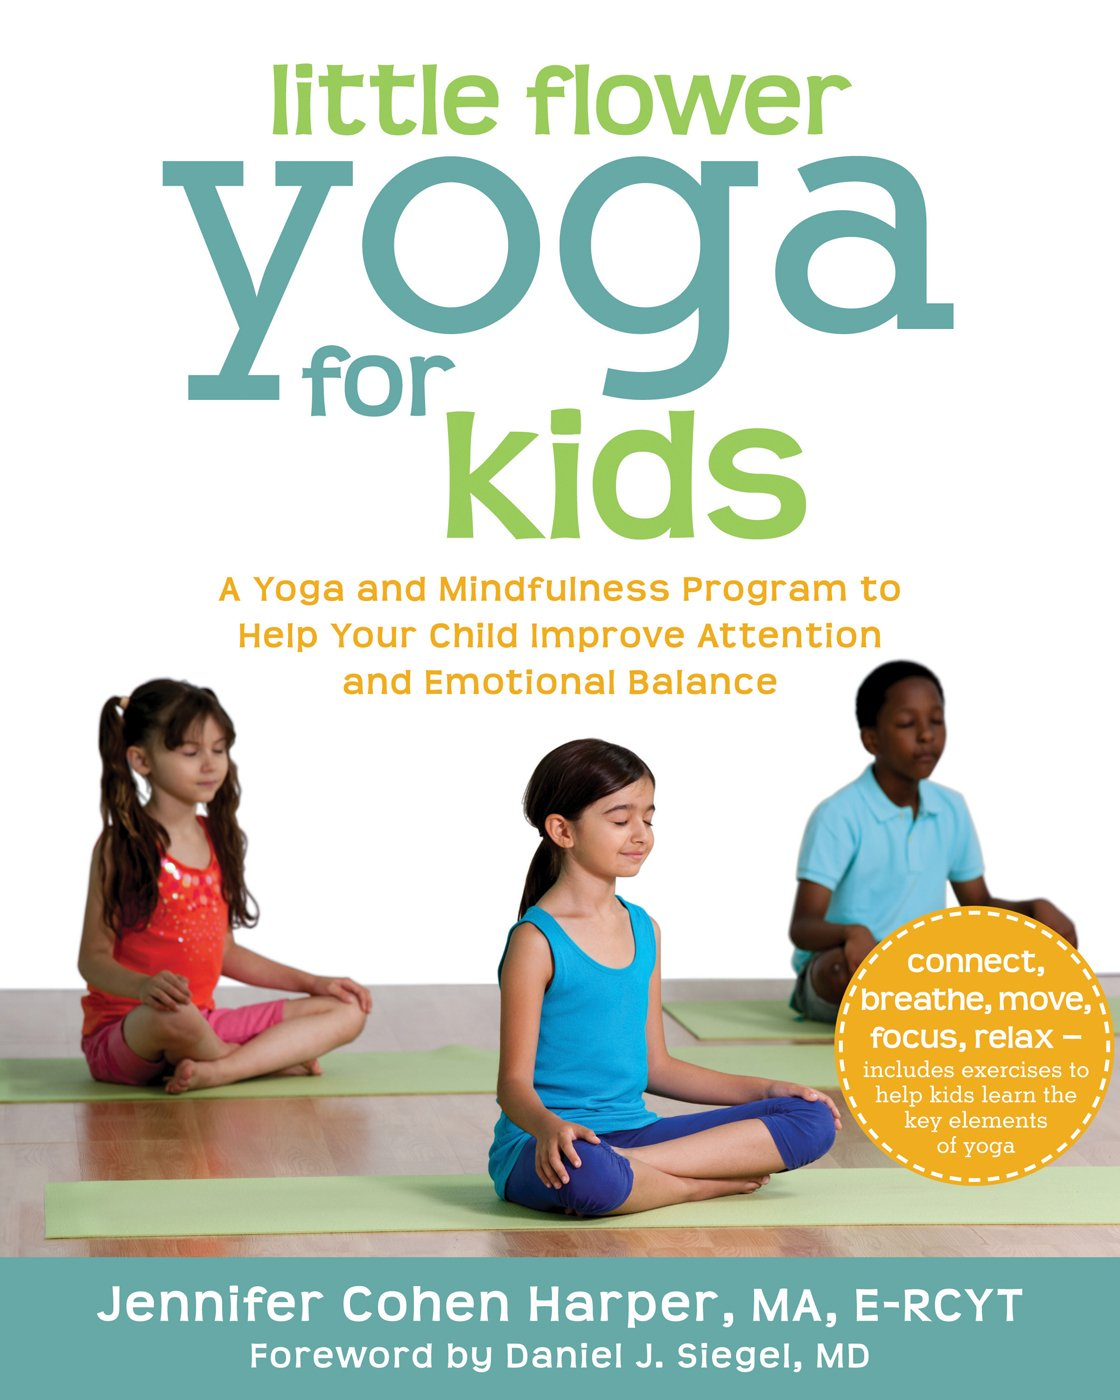 Little Flower Yoga For Kids A Yoga And Mindfulness Program To Help Your Child Improve Attention And Emotional Balance Harper Ma E Rcyt Jennifer Cohen Siegel Md Daniel J 9781608827923 Amazon Com Books